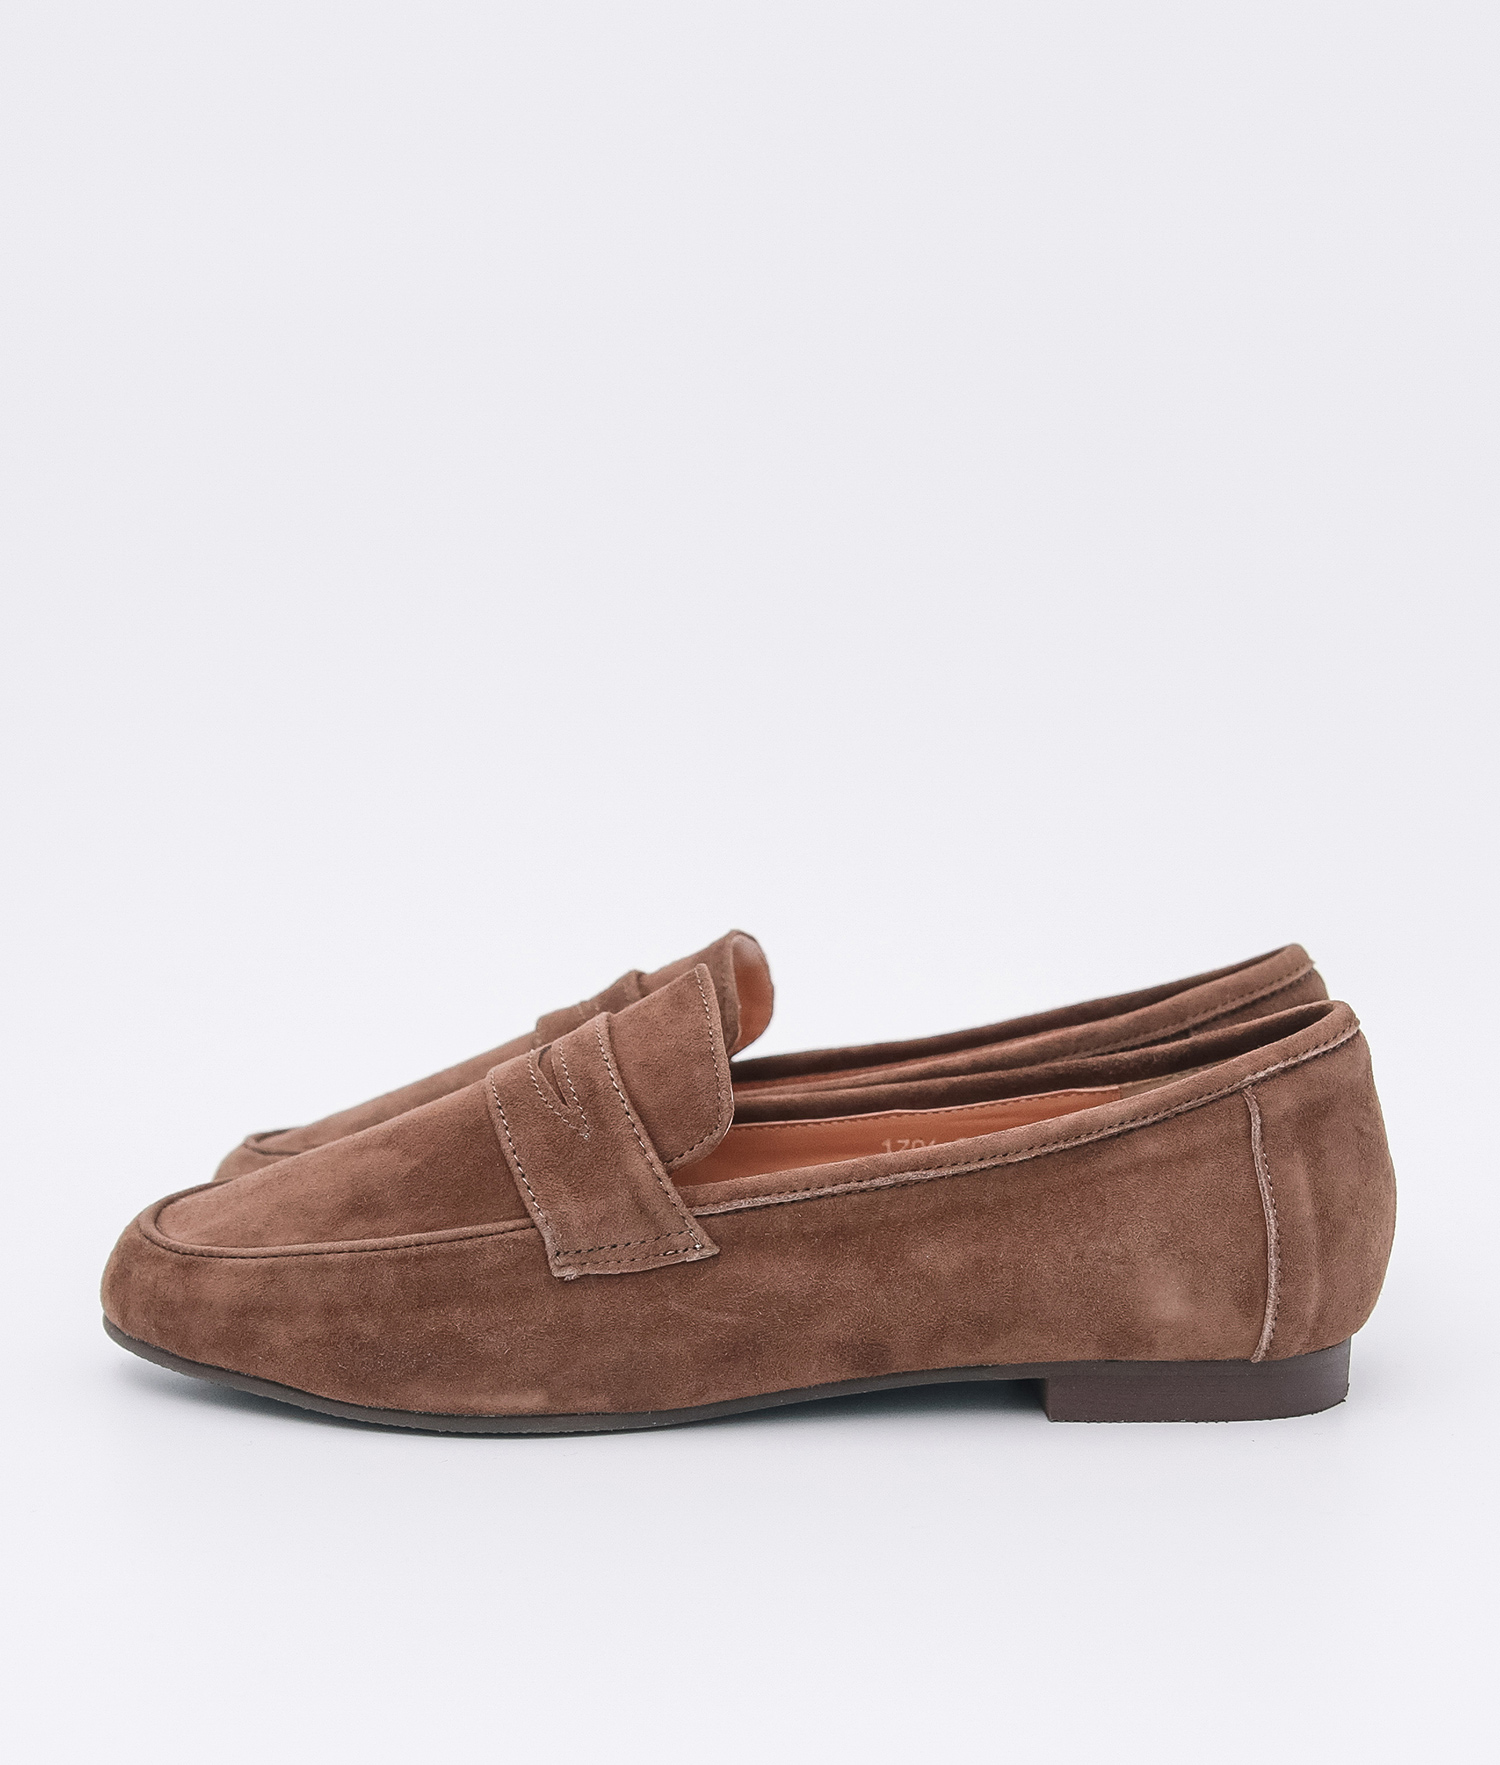 7f52f974f77 AnnaKastle Womens Cute Suede Penny Loafers Brown